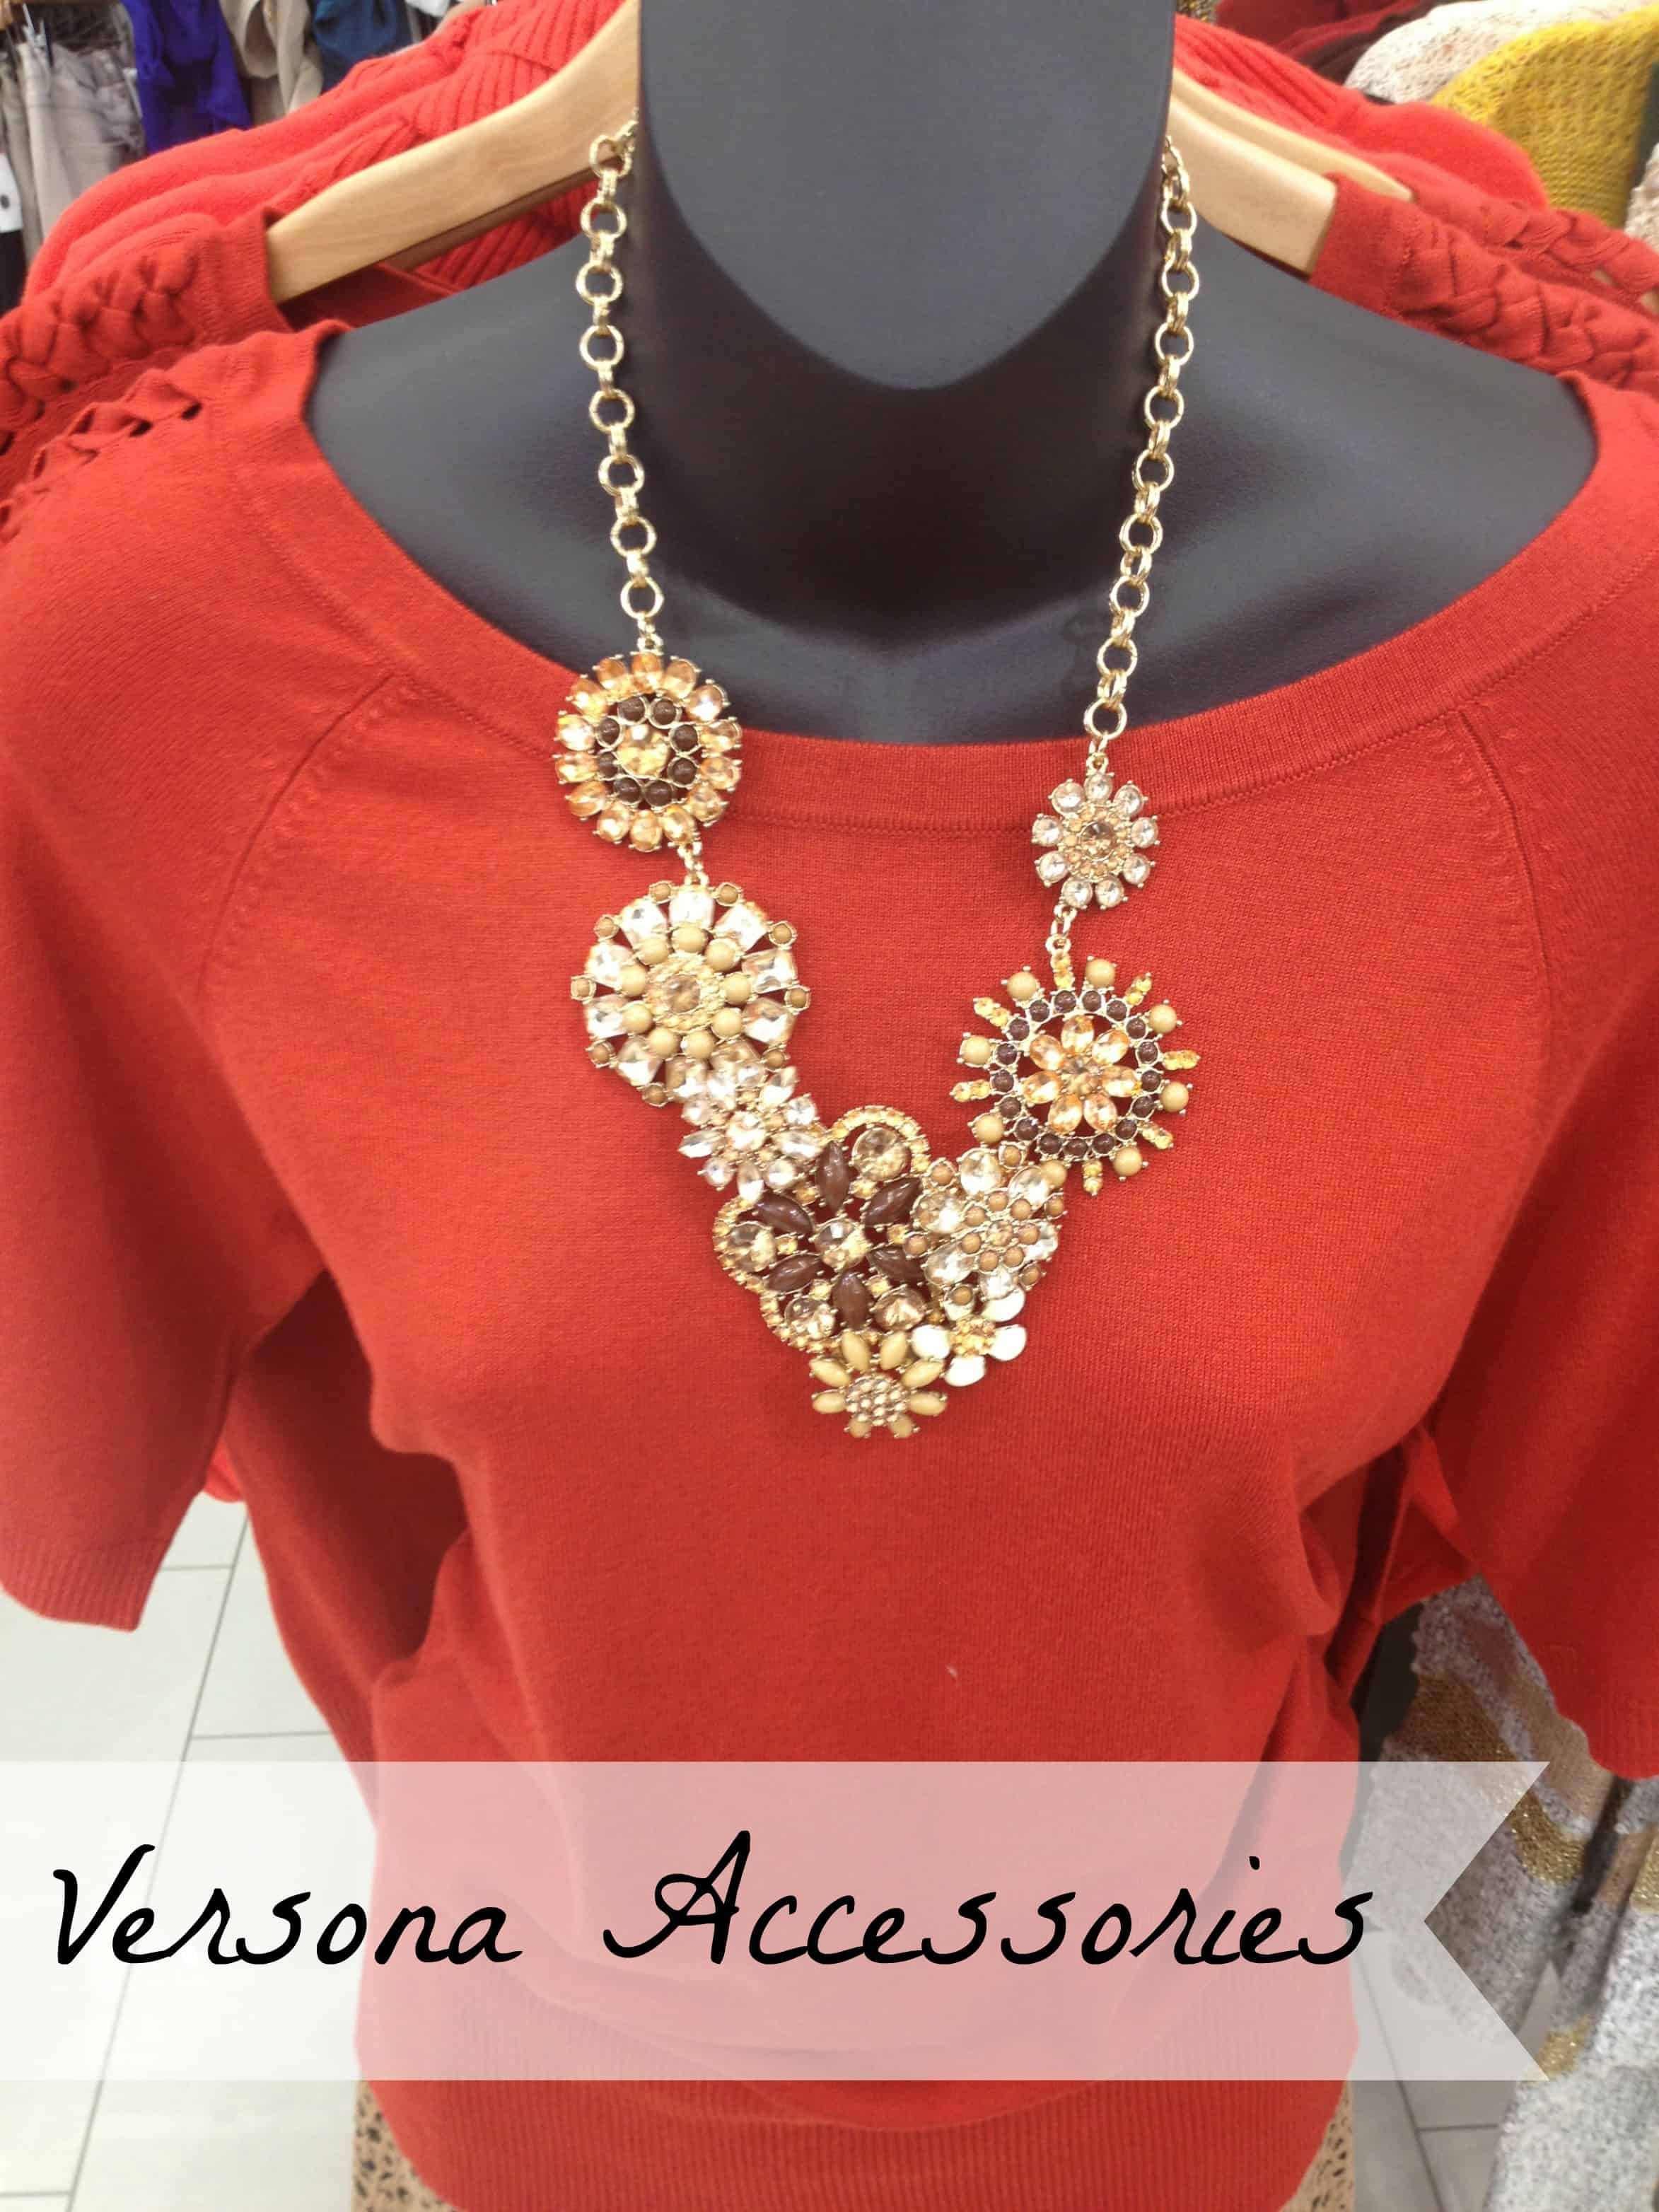 save time and money at versona accessories dallas socials